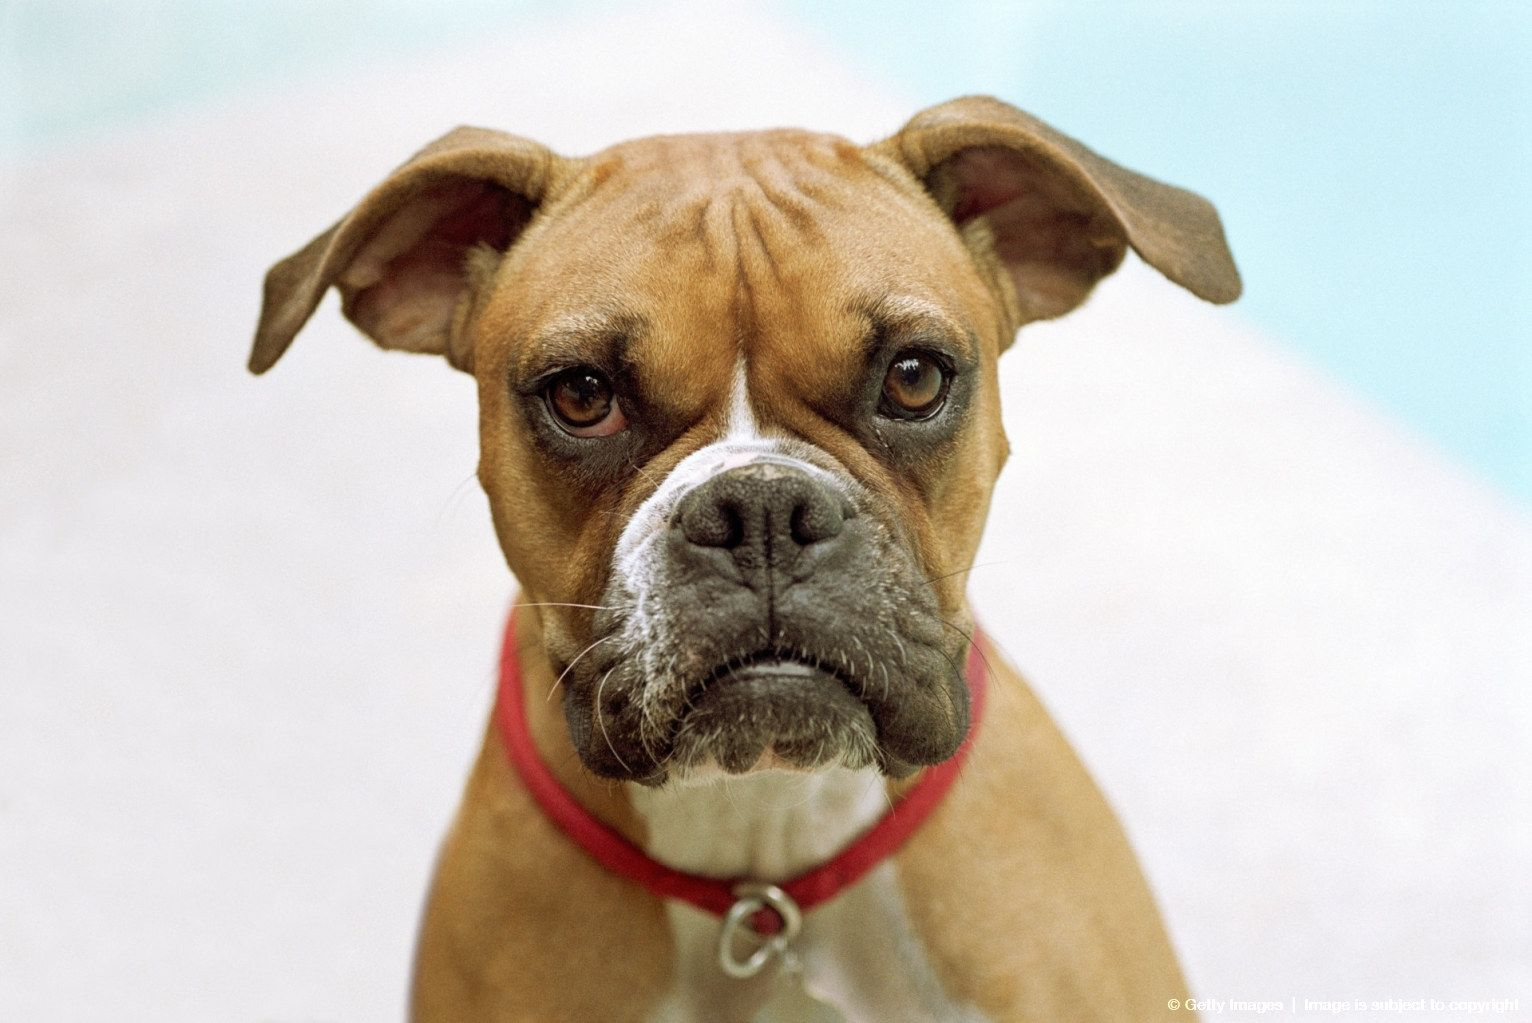 Boxer Dog The Ears Always Remind Me Of Little Bat Wings Lol